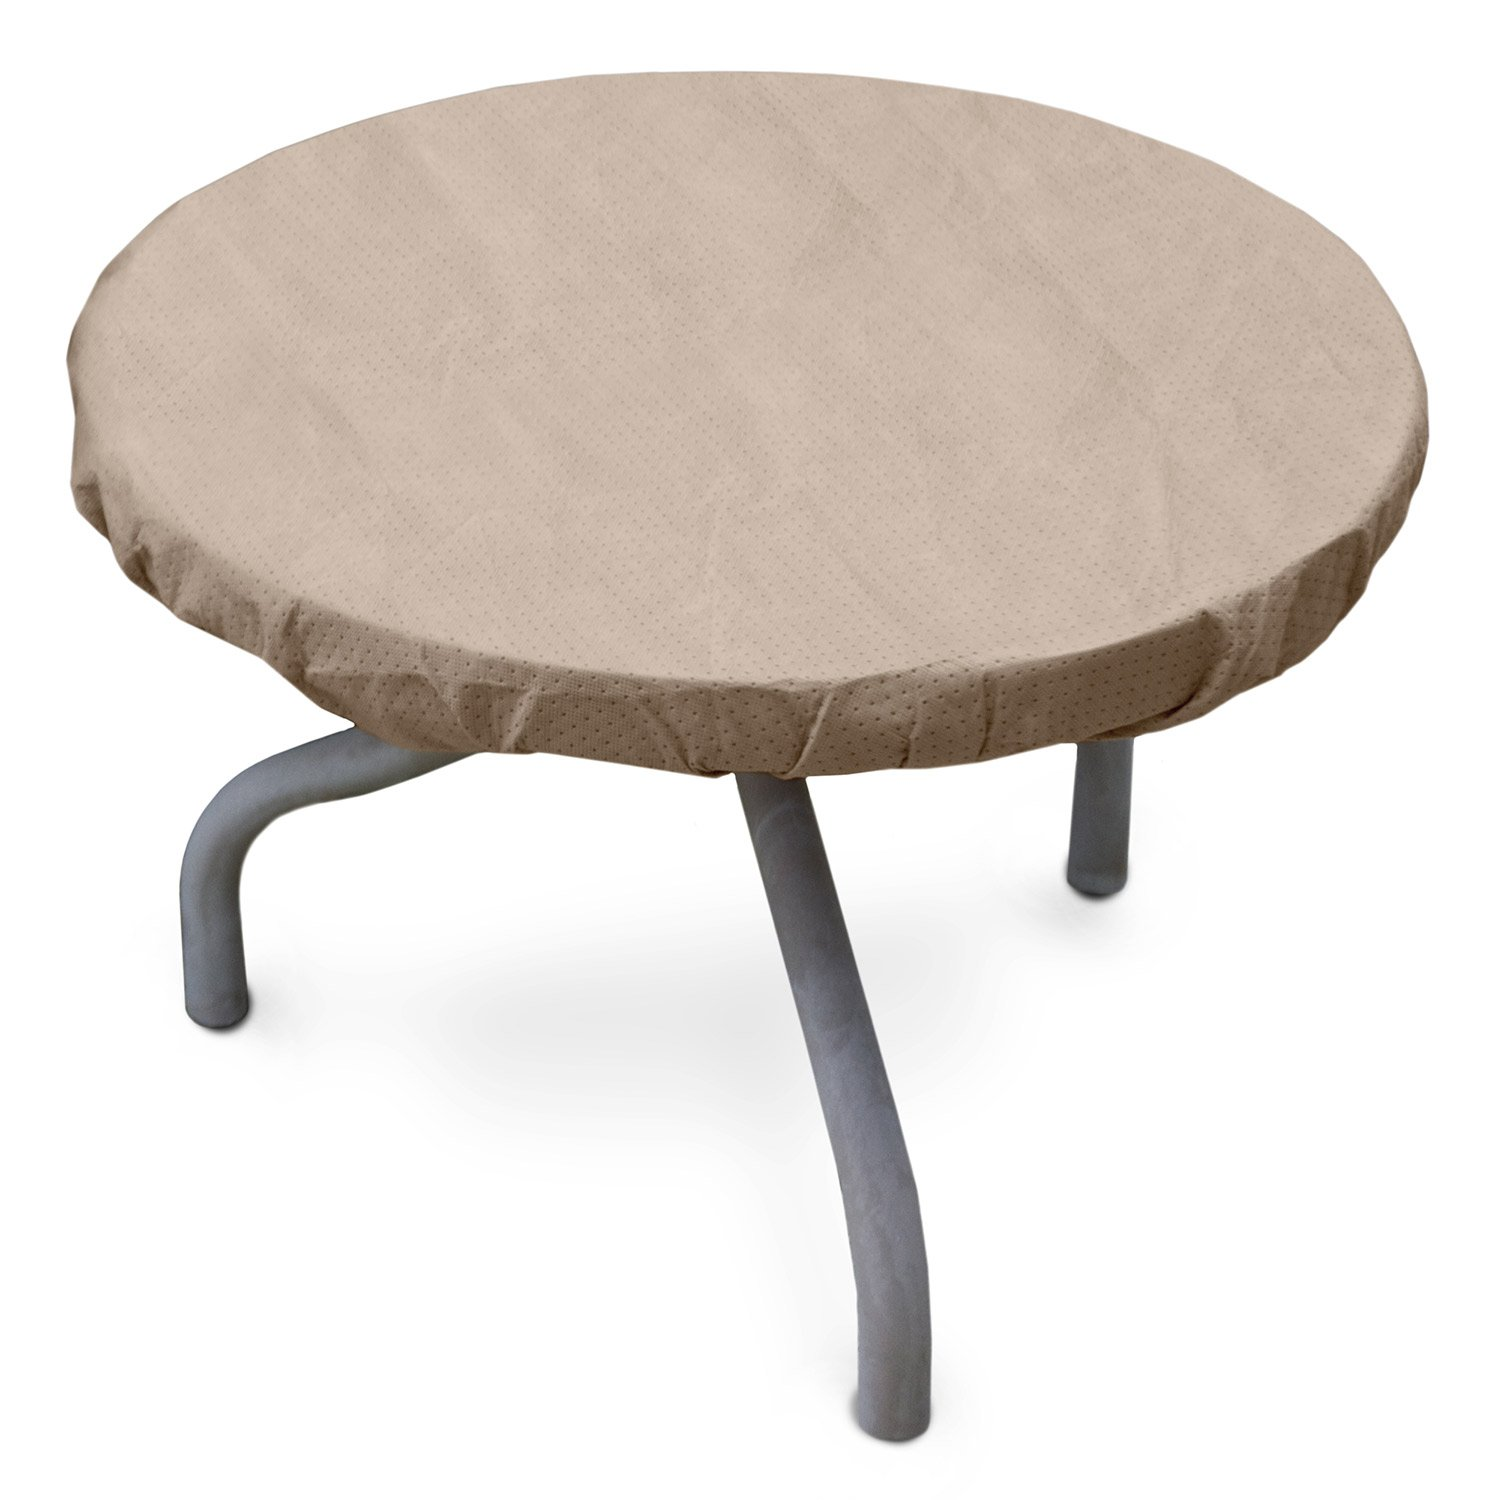 Amazon.com : KoverRoos III 31542 26 Inch Round Table Top Cover, 30 Inch  Diameter, Taupe : Patio Table Covers : Garden U0026 Outdoor Part 93